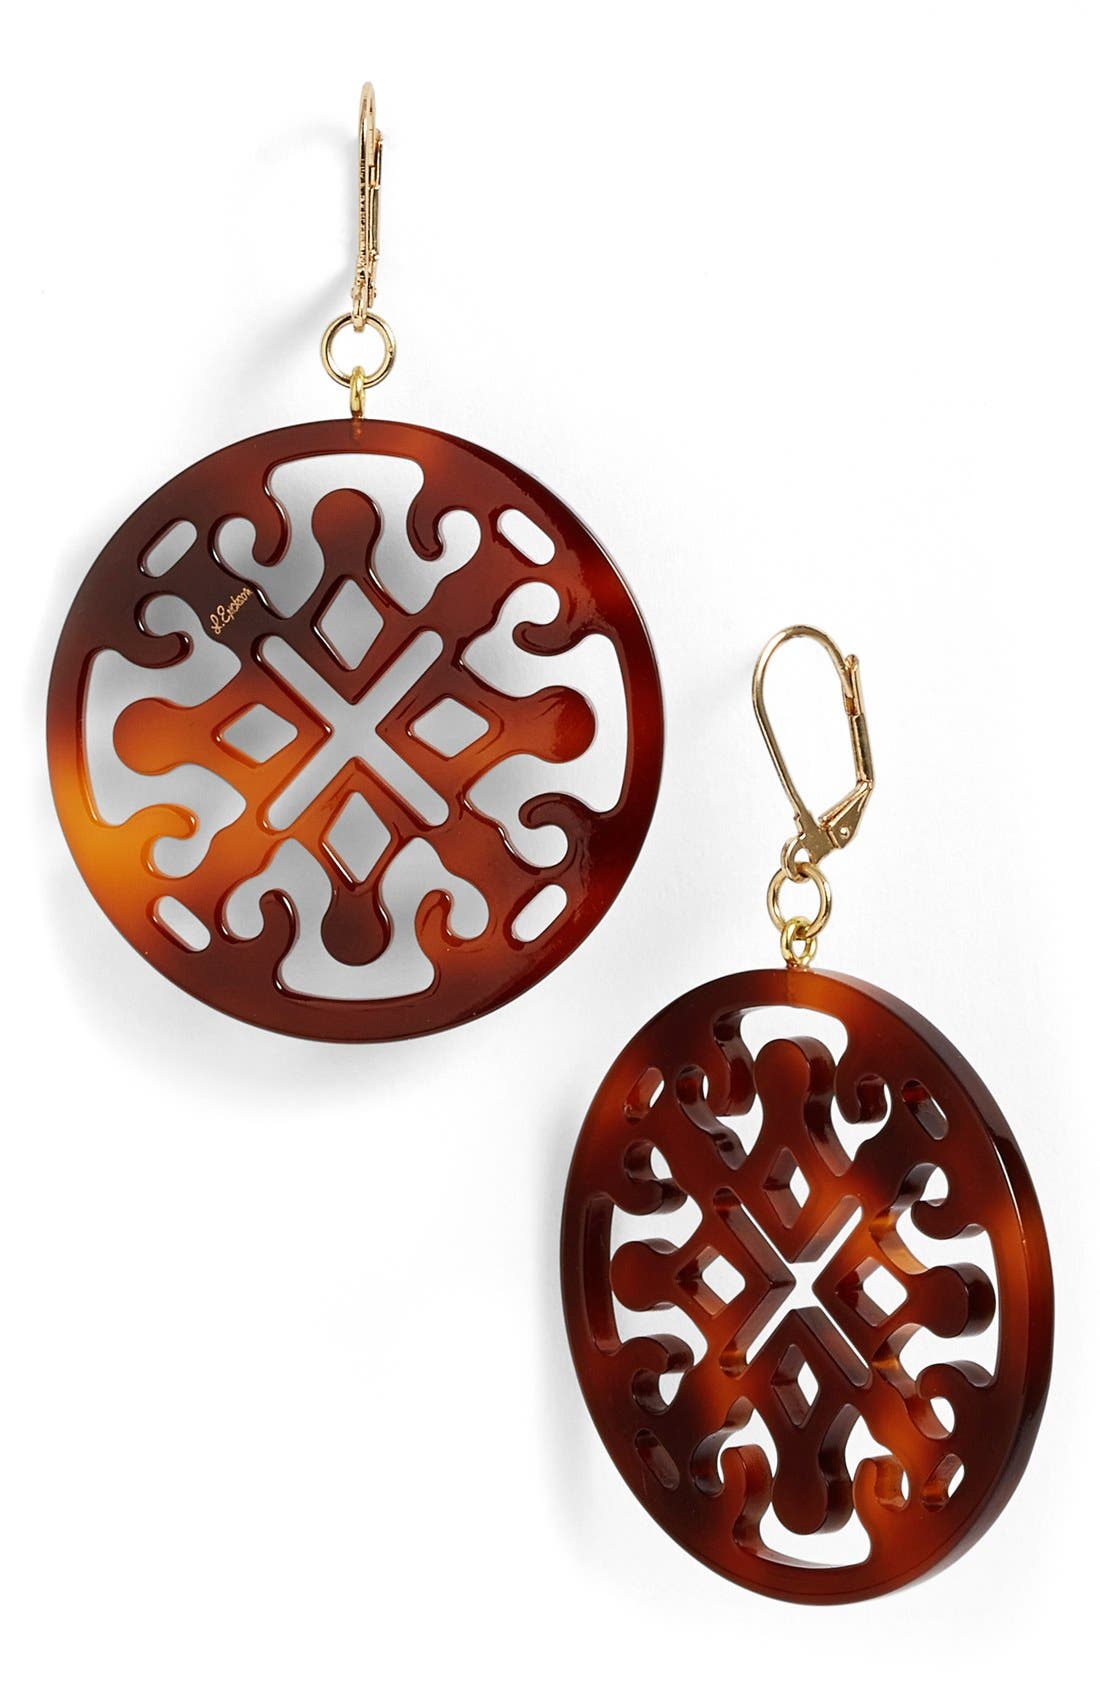 Medallion Filigree Drop Earrings,                             Main thumbnail 1, color,                             Tortoise